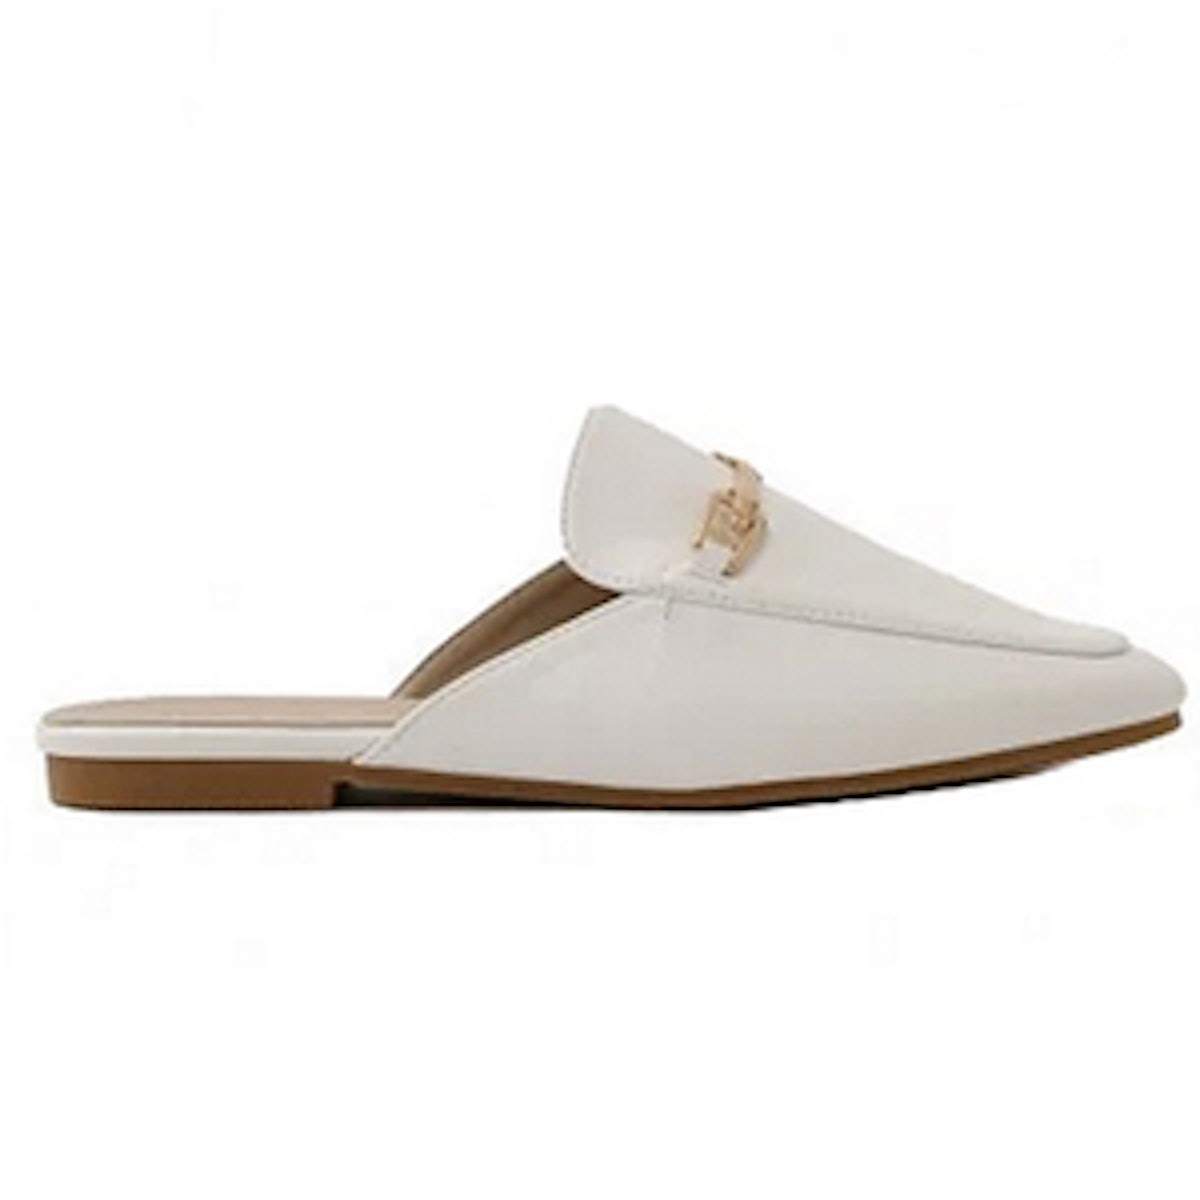 Shoreditch Backless Loafers